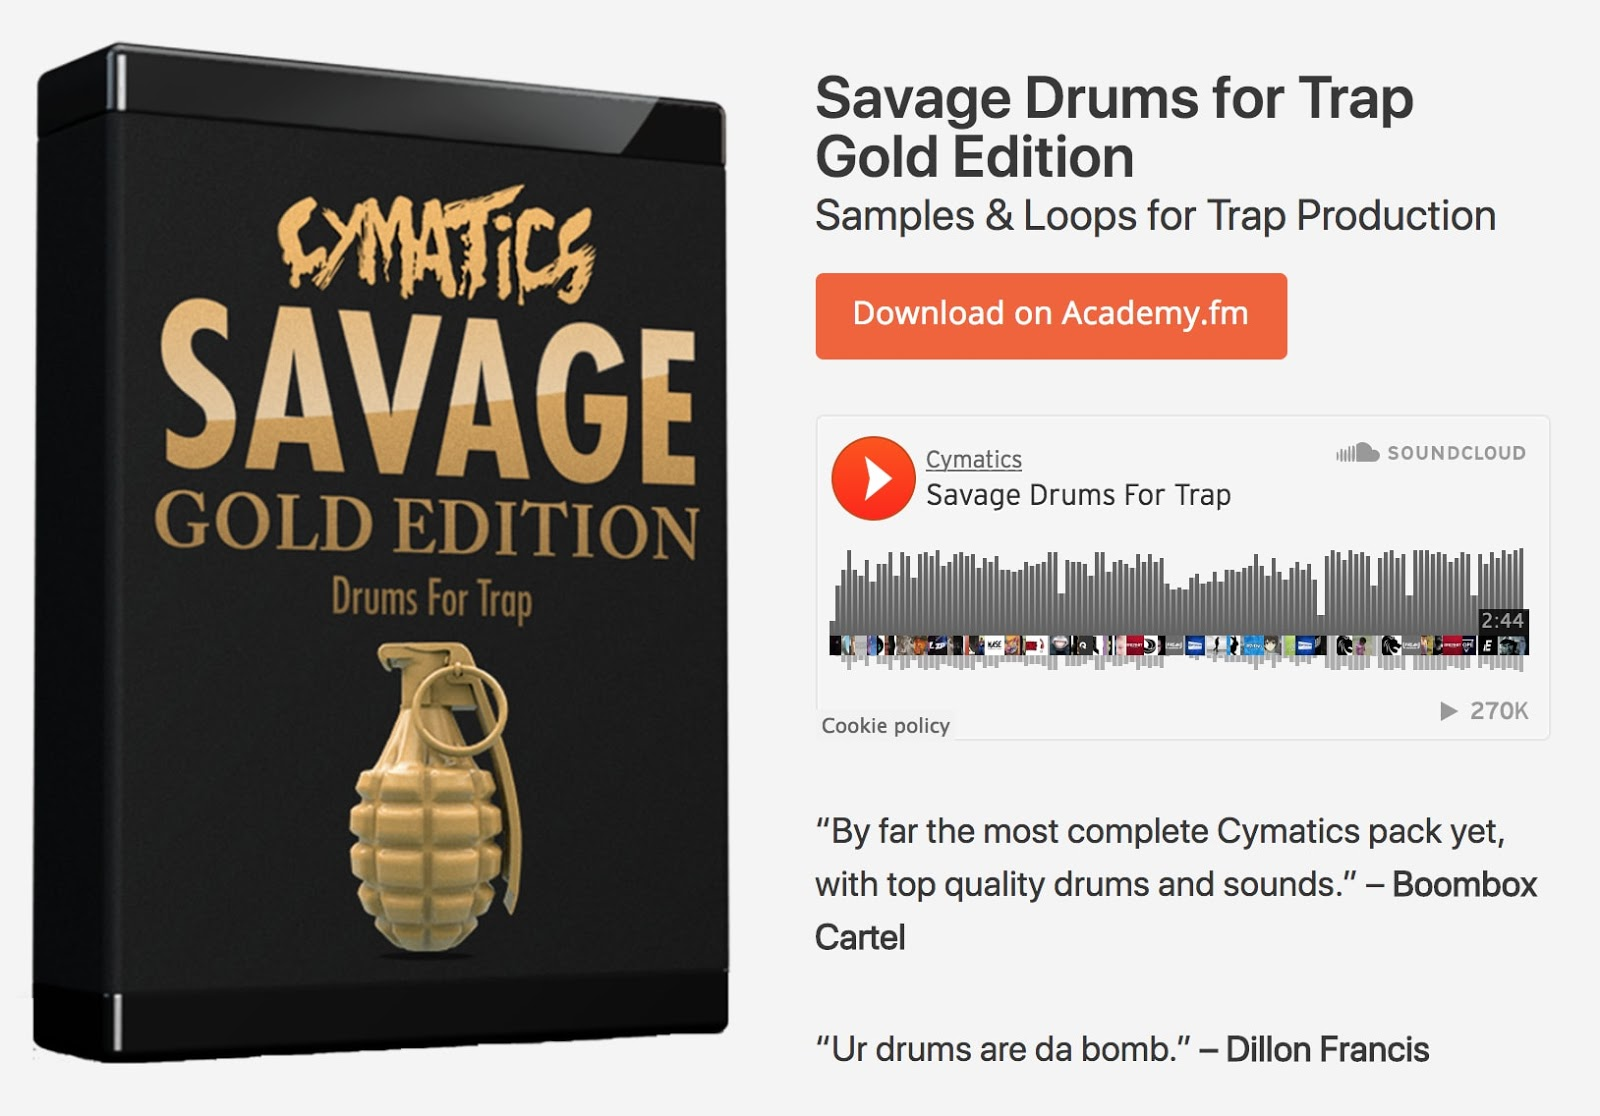 cymatics-how to make trap music-savage drums